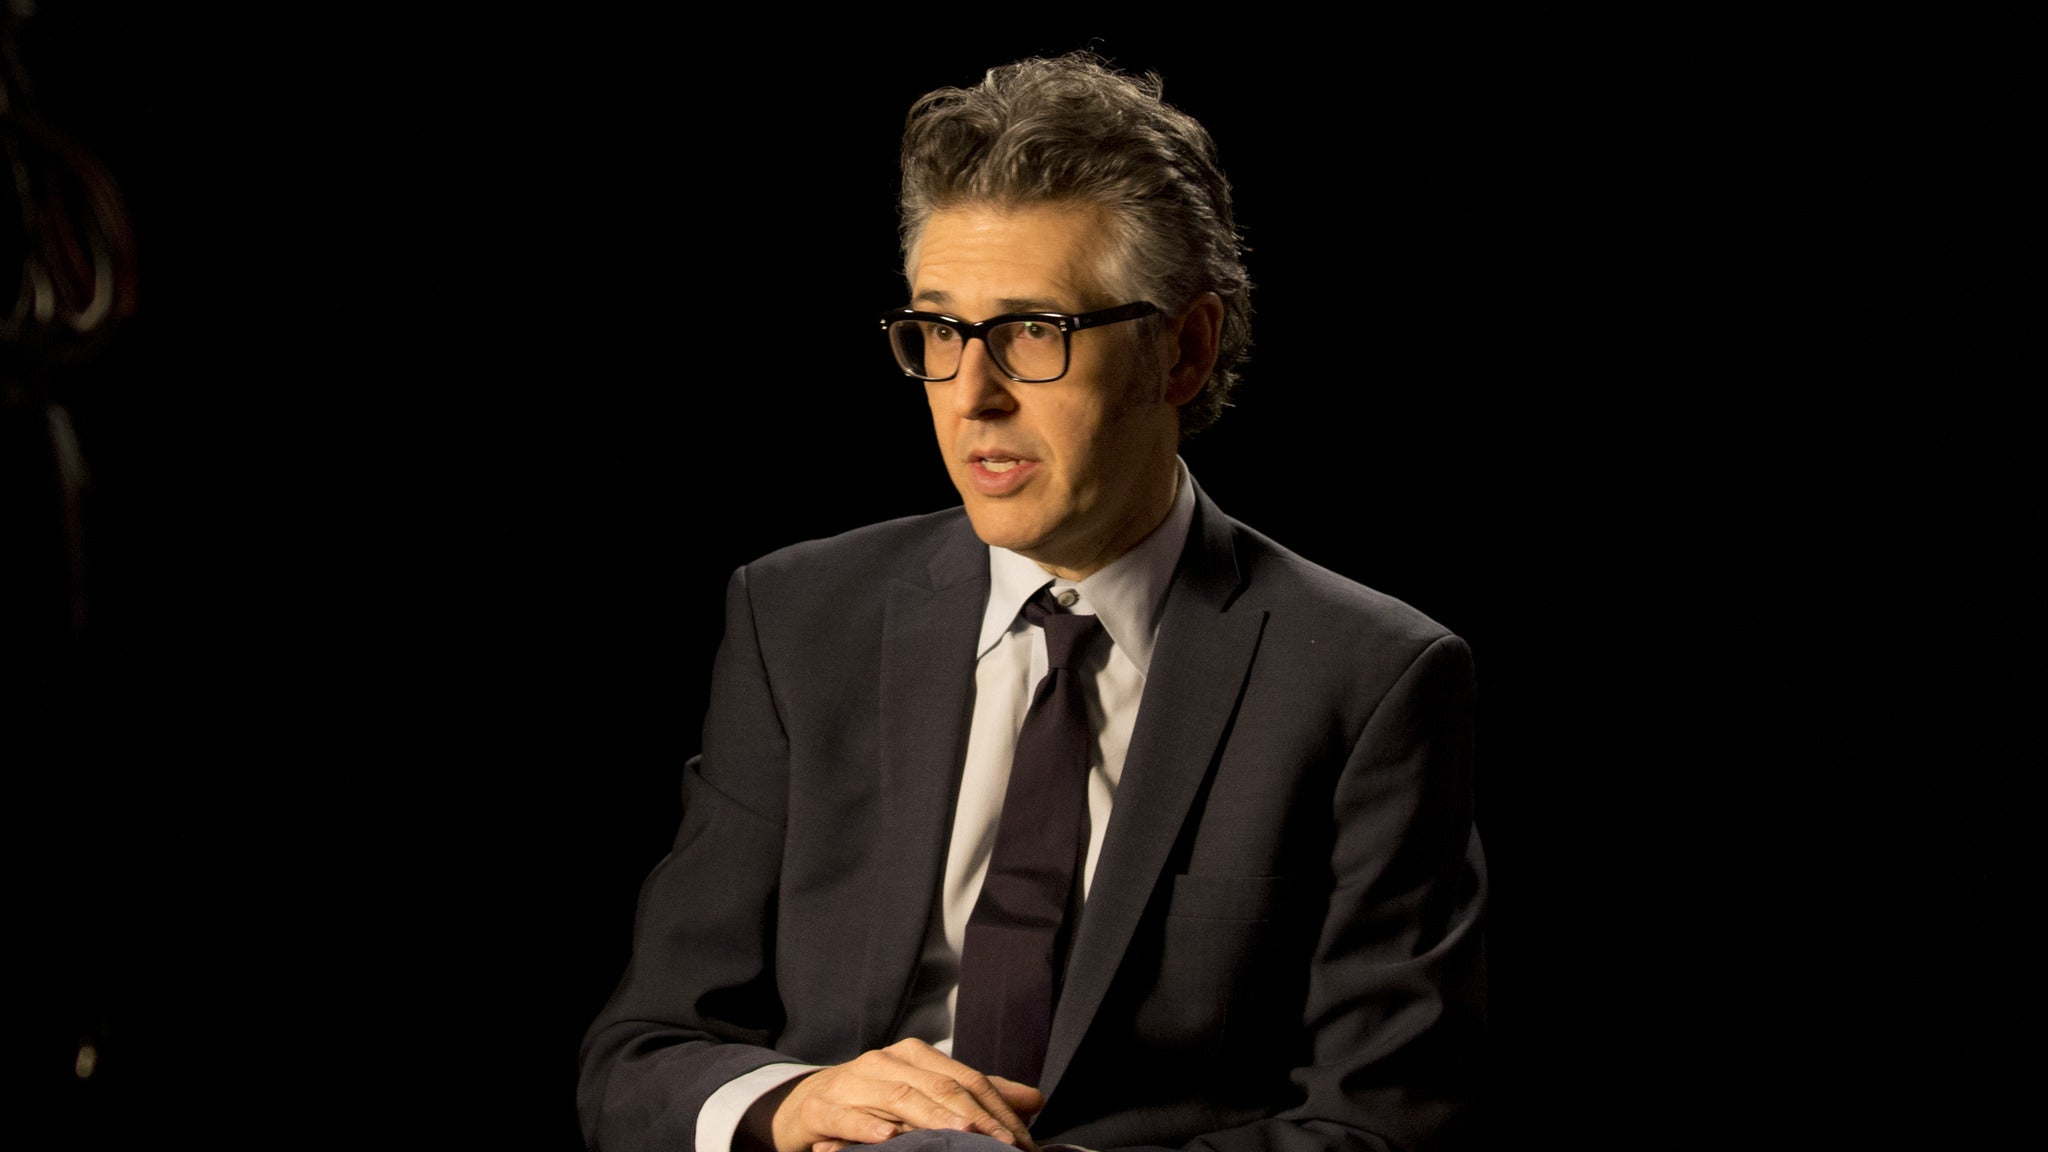 Ira Glass at State Theatre - Minneapolis, MN 55402